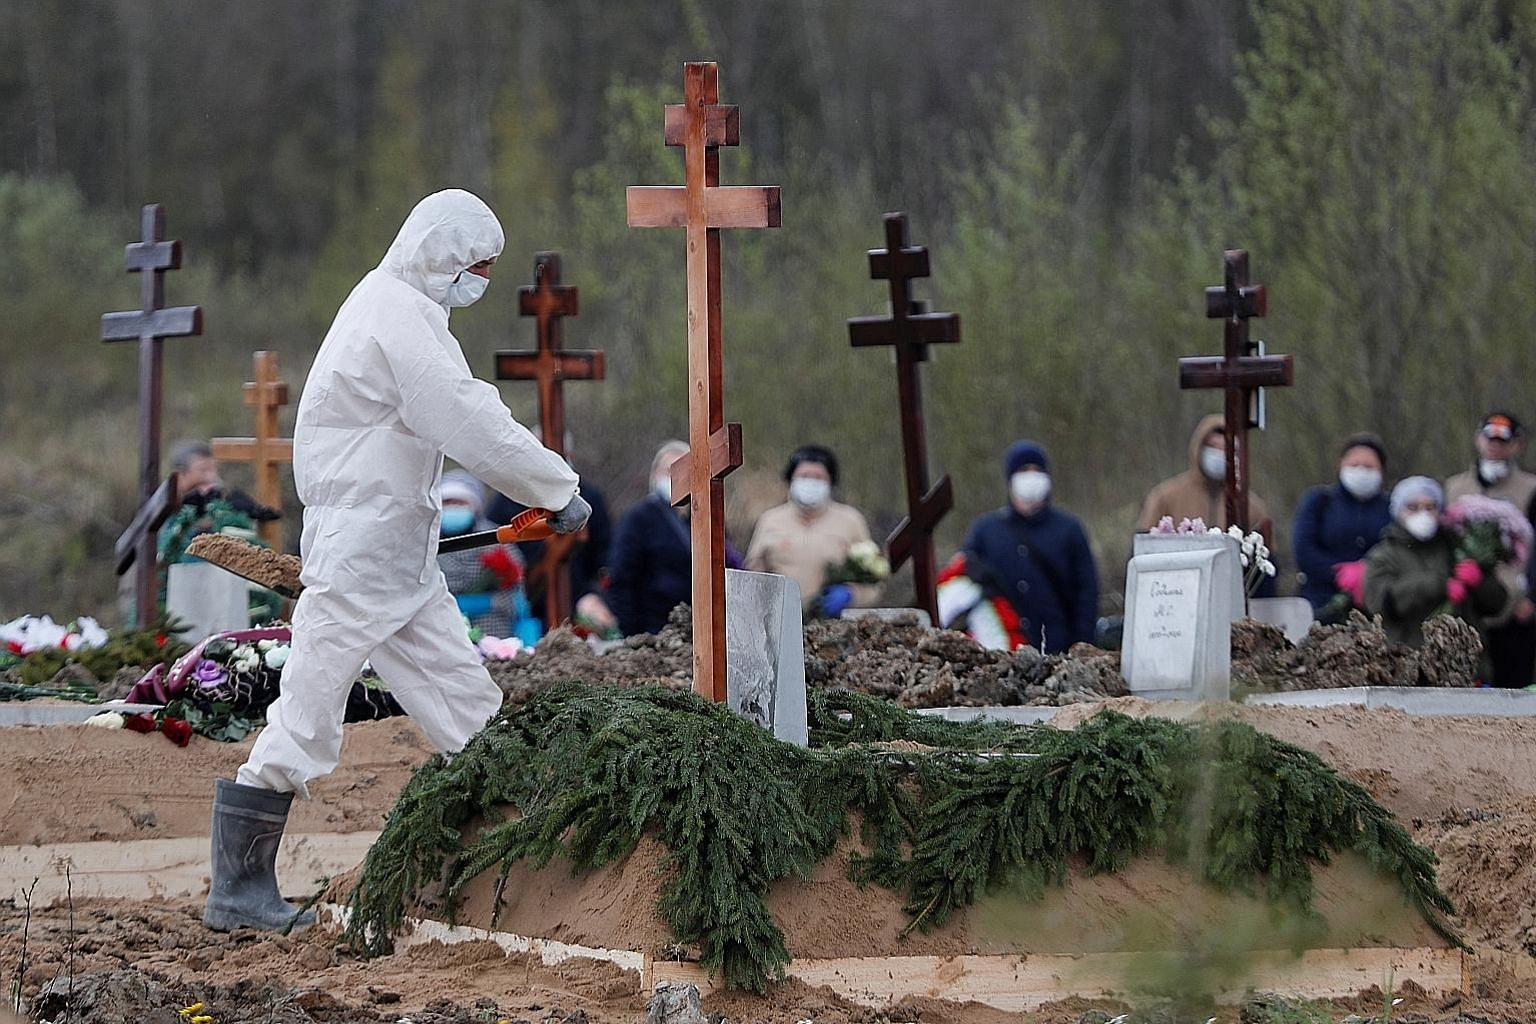 A gravedigger wearing personal protective equipment yesterday in St Petersburg while burying a person who is presumed to have died from Covid-19, with mourners in masks standing at a distance. Russia has almost 250,000 confirmed coronavirus cases, bu